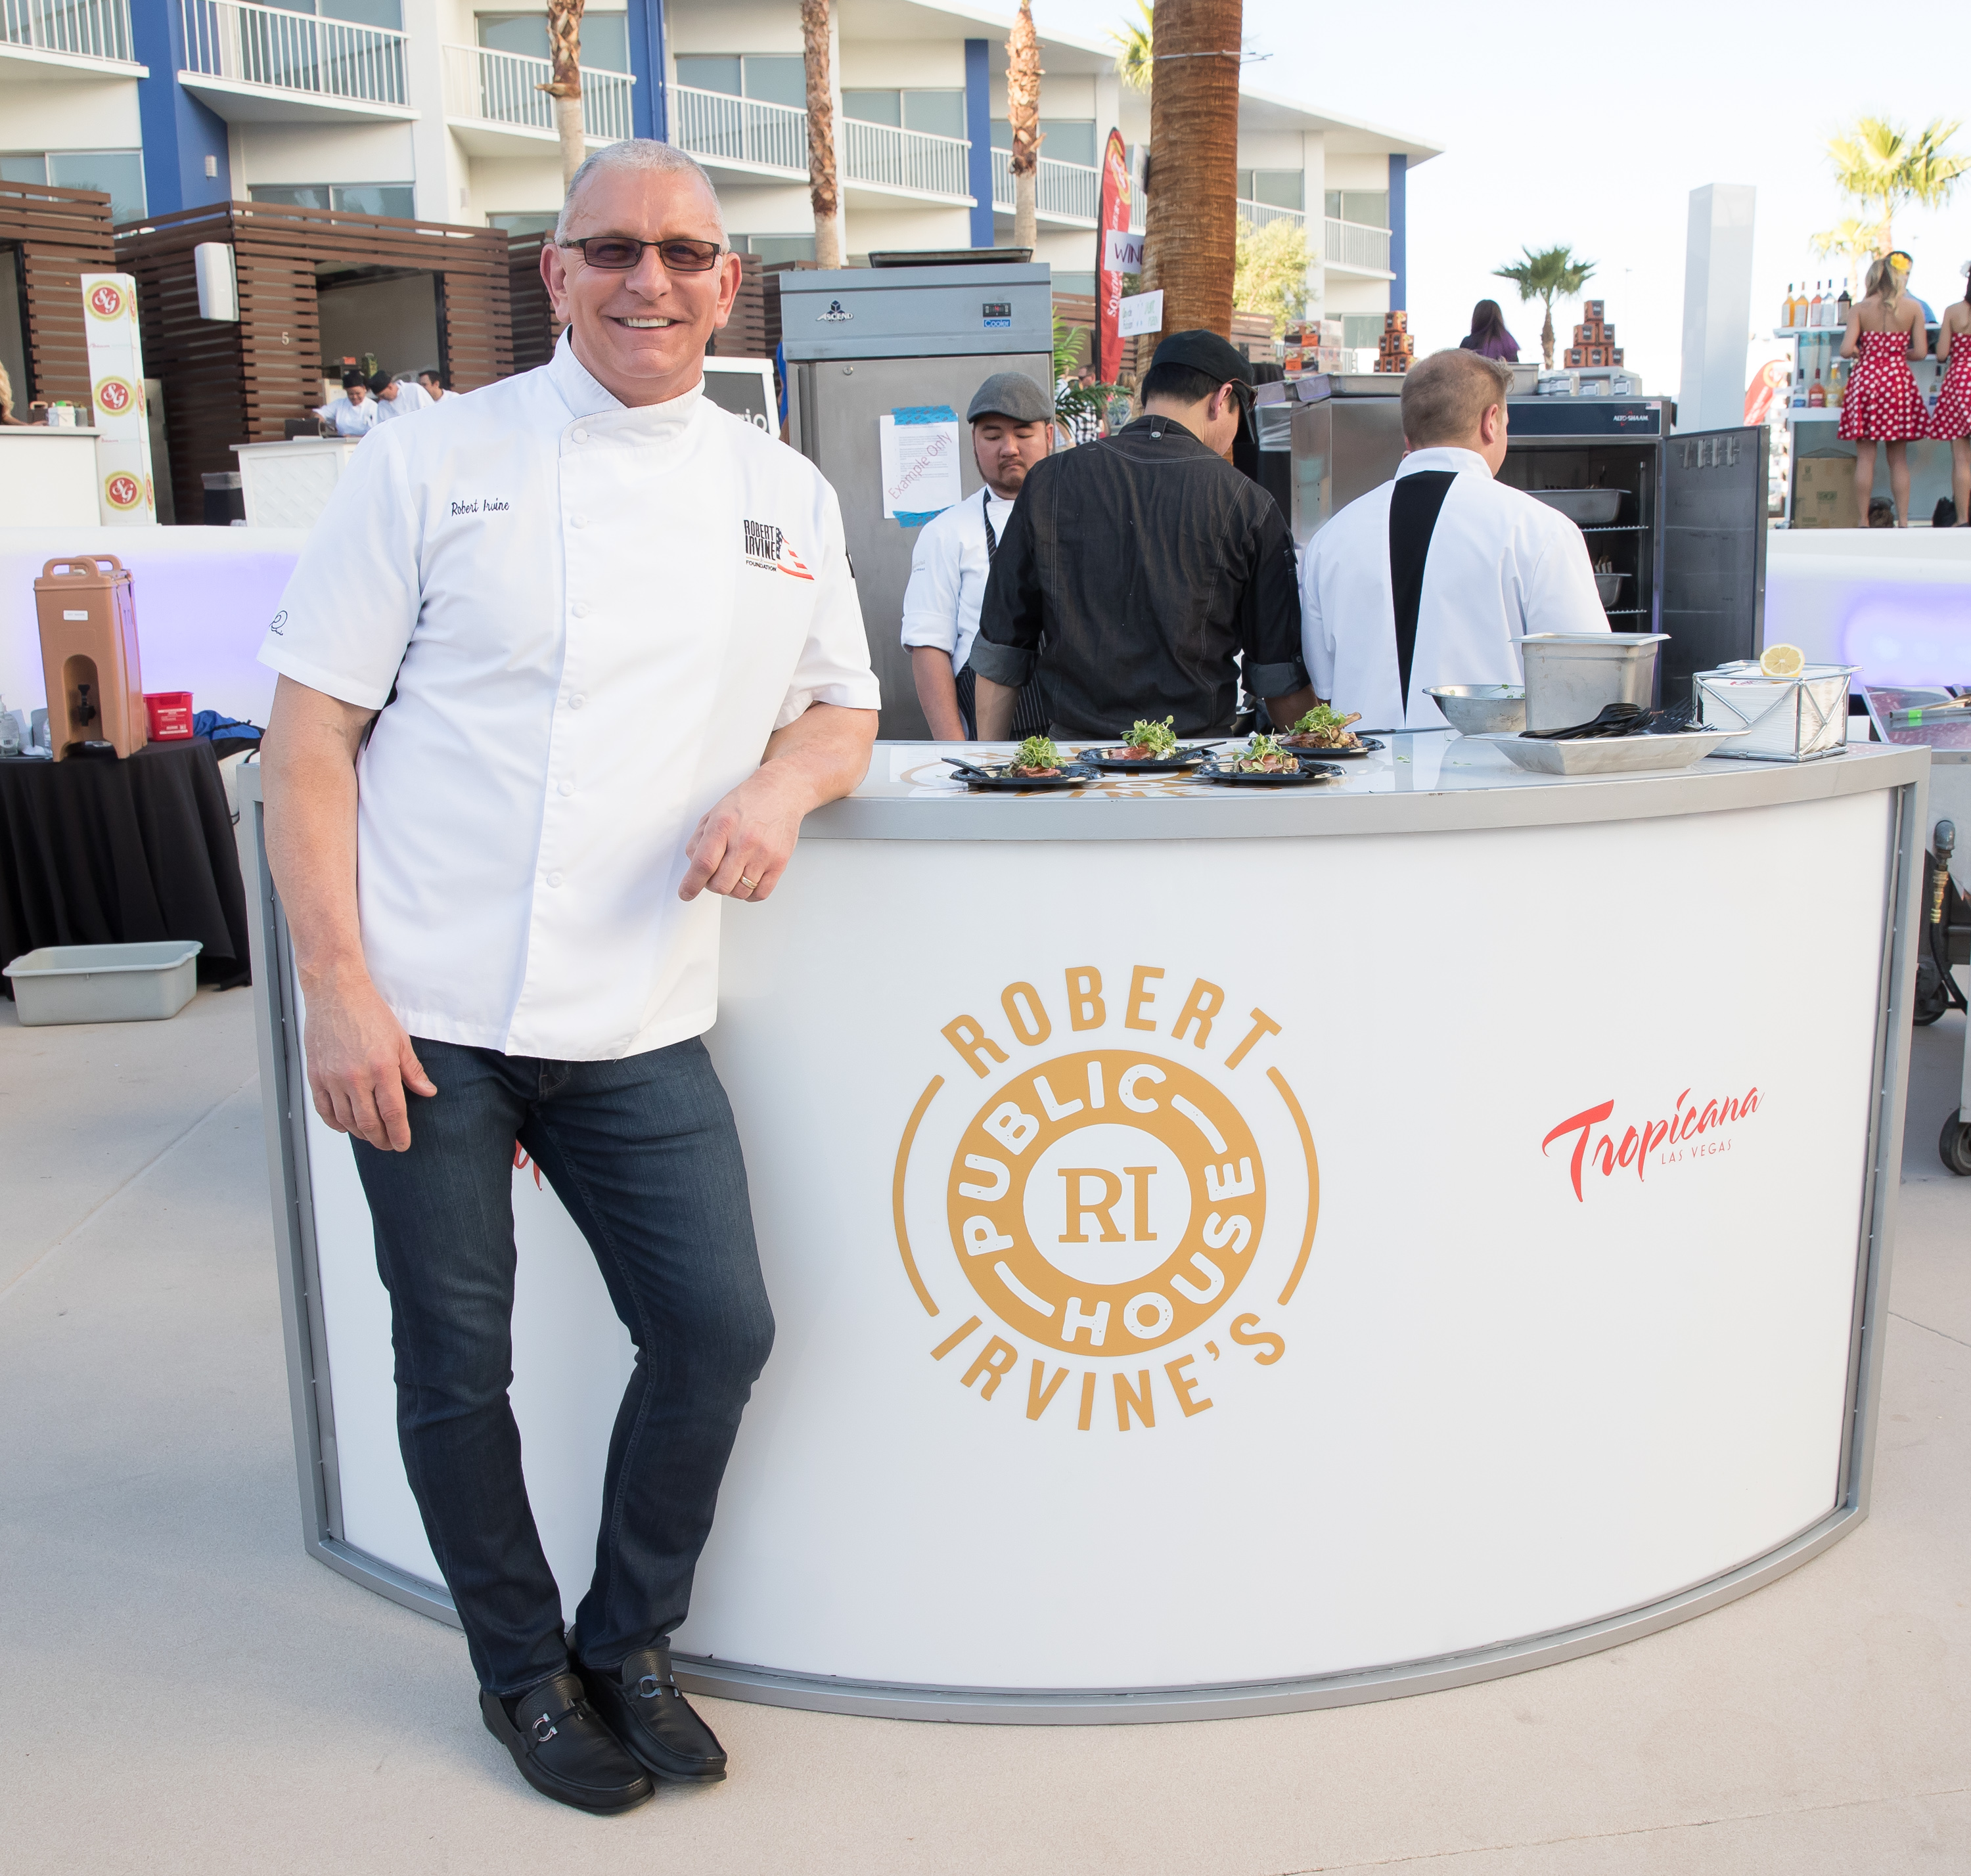 "Tropicana Las Vegas celebrates the beginning of the 11th annual Las Vegas Restaurant Week with its ""Summer Cookout featuring Robert Irvine & Friends"" on Friday, June 15, 2017 in Las Vegas. The event raised $40,000 for Three Square Food Bank. (Photo courtesy of Erik Kabik Photography/erikkabik.com)"